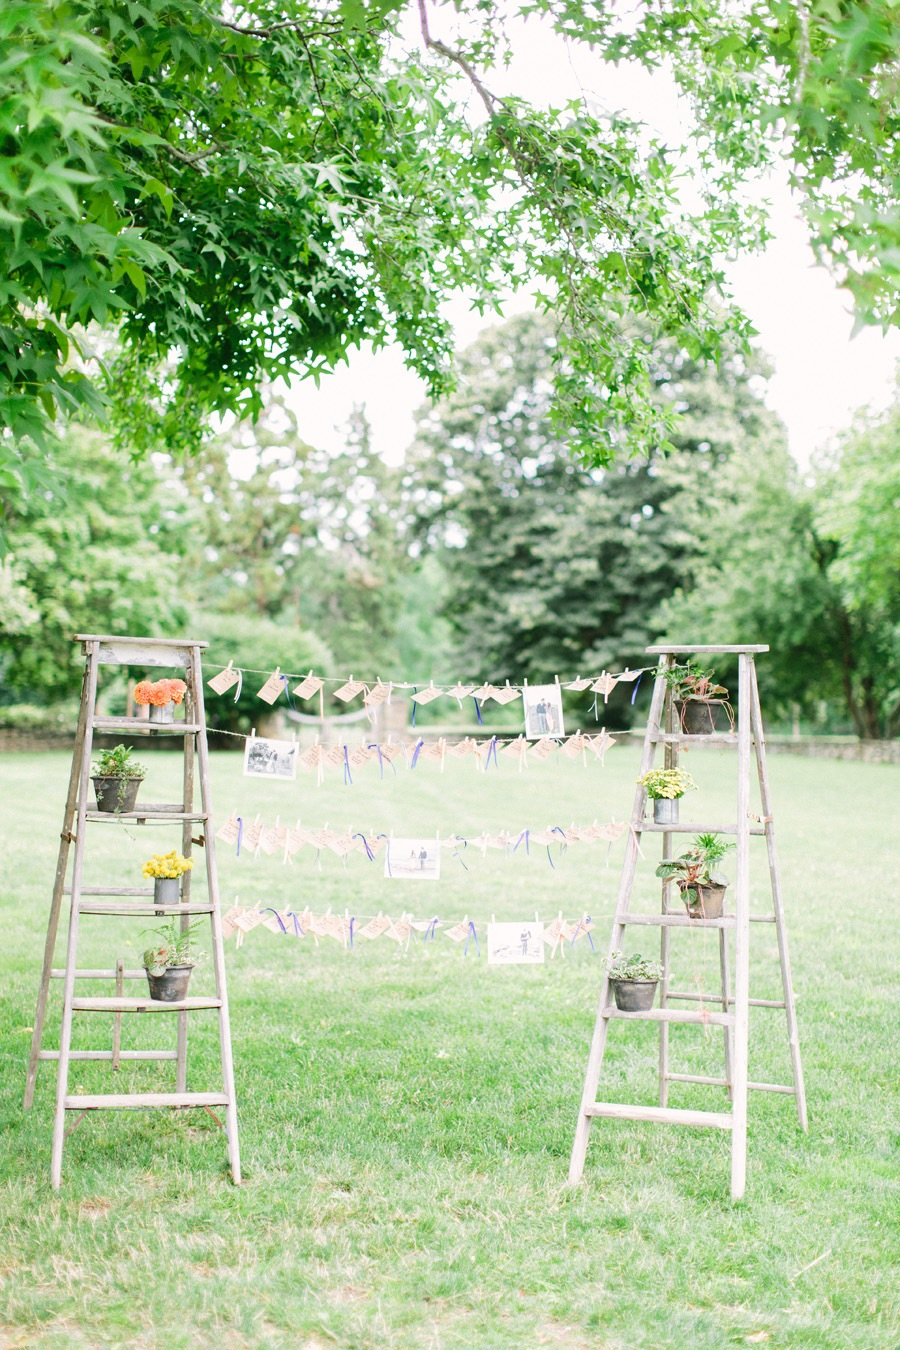 rhode-island-wedding-6-06102015-ky